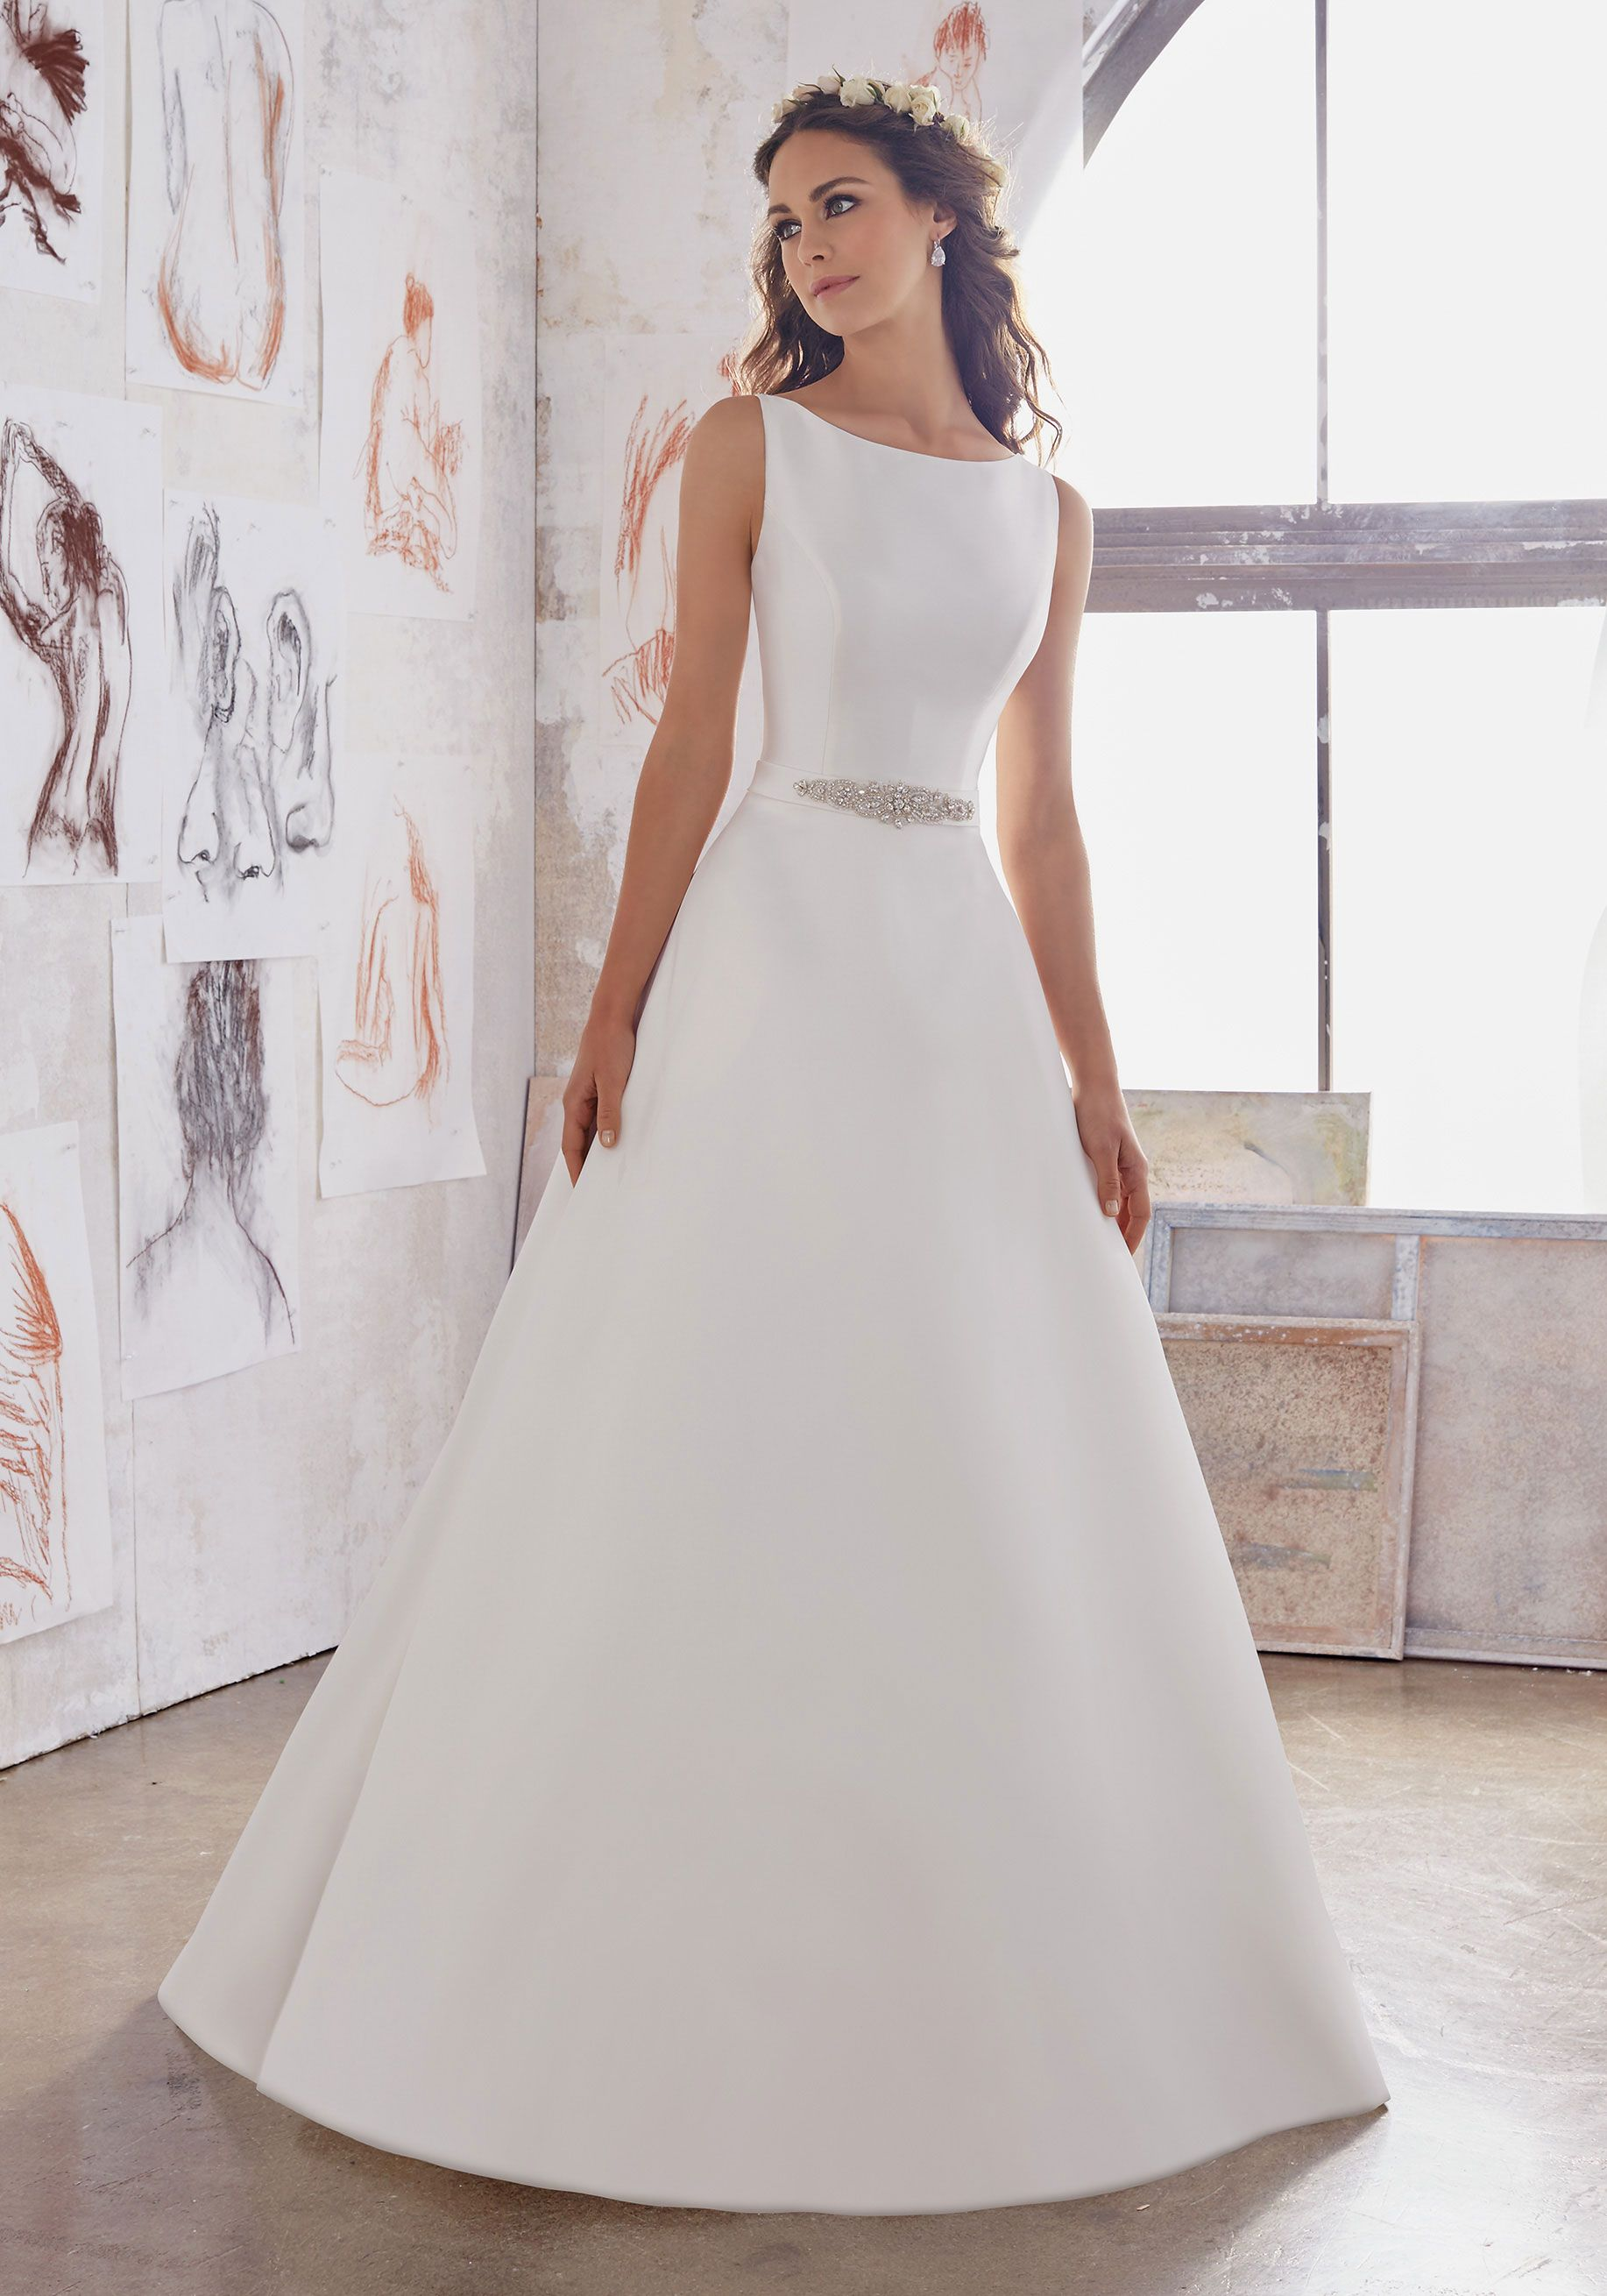 Maxine wedding dress costume ideas pinterest bridal dresses